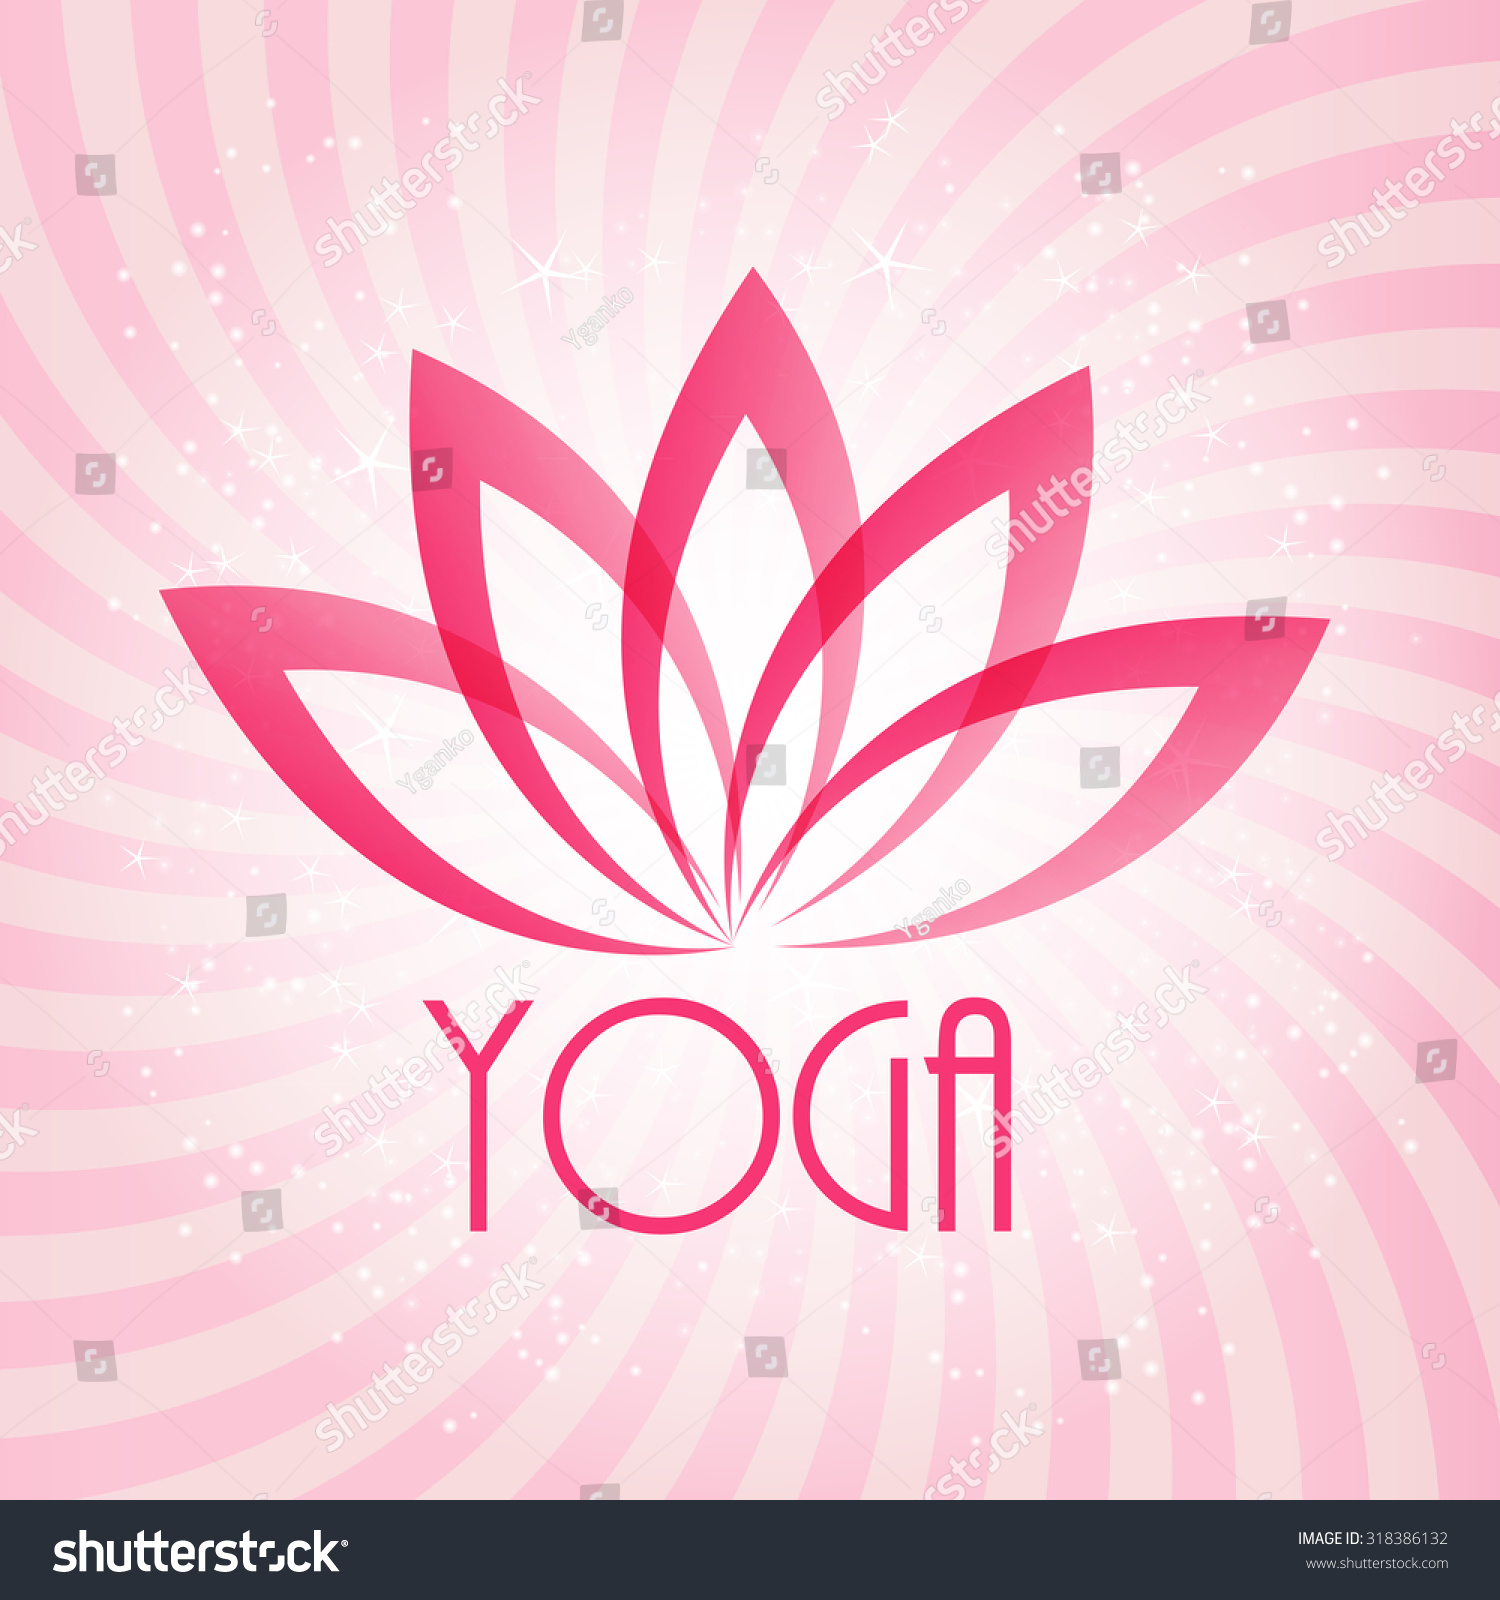 Yoga pattern background seamless pattern with five petals lotus flower - Lotus Flower Sign For Wellness Spa And Yoga Vector Illustration